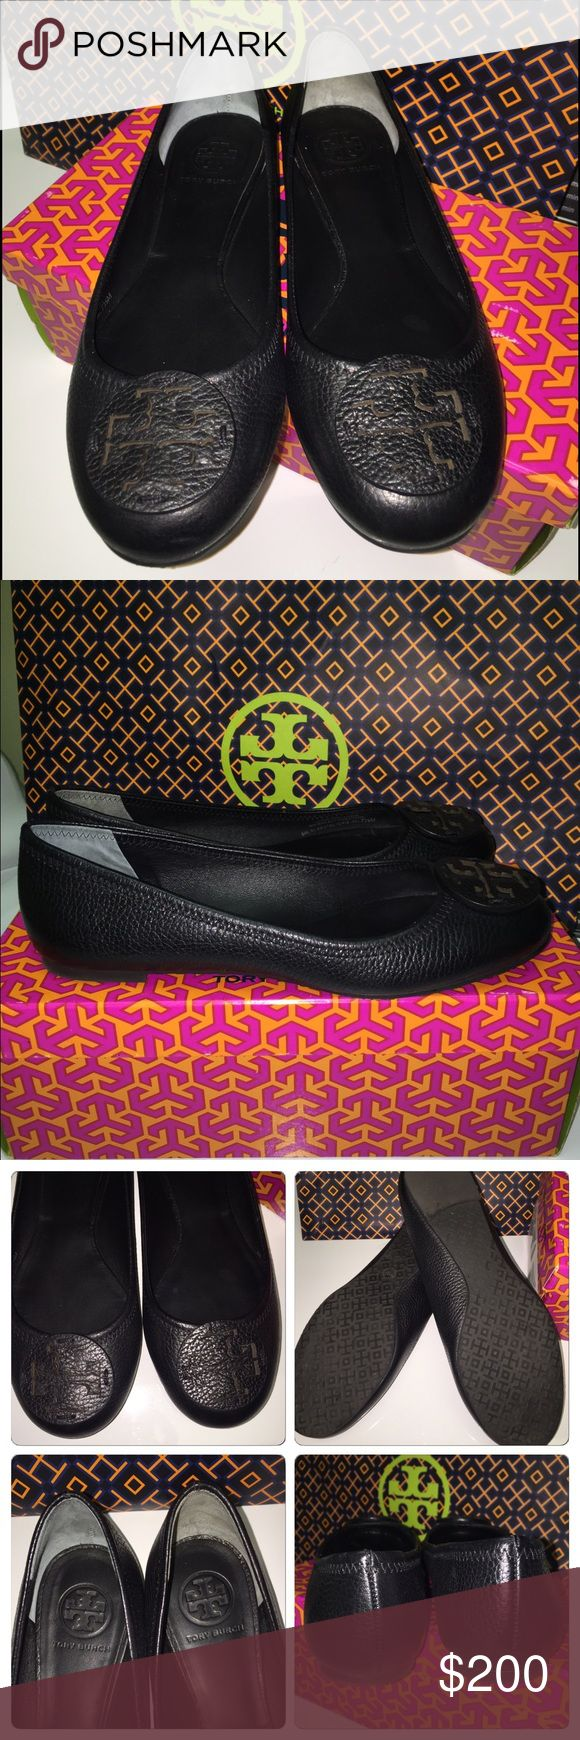 💫HP💫Tory Burch Reba Flat 7.5 Tumbled Leather EXCELLENT CONDITION! Worn only a few hours, minimal wear. Comes with box and shopping bag. Please ask any questions, thx for looking! Tory Burch Shoes Flats & Loafers